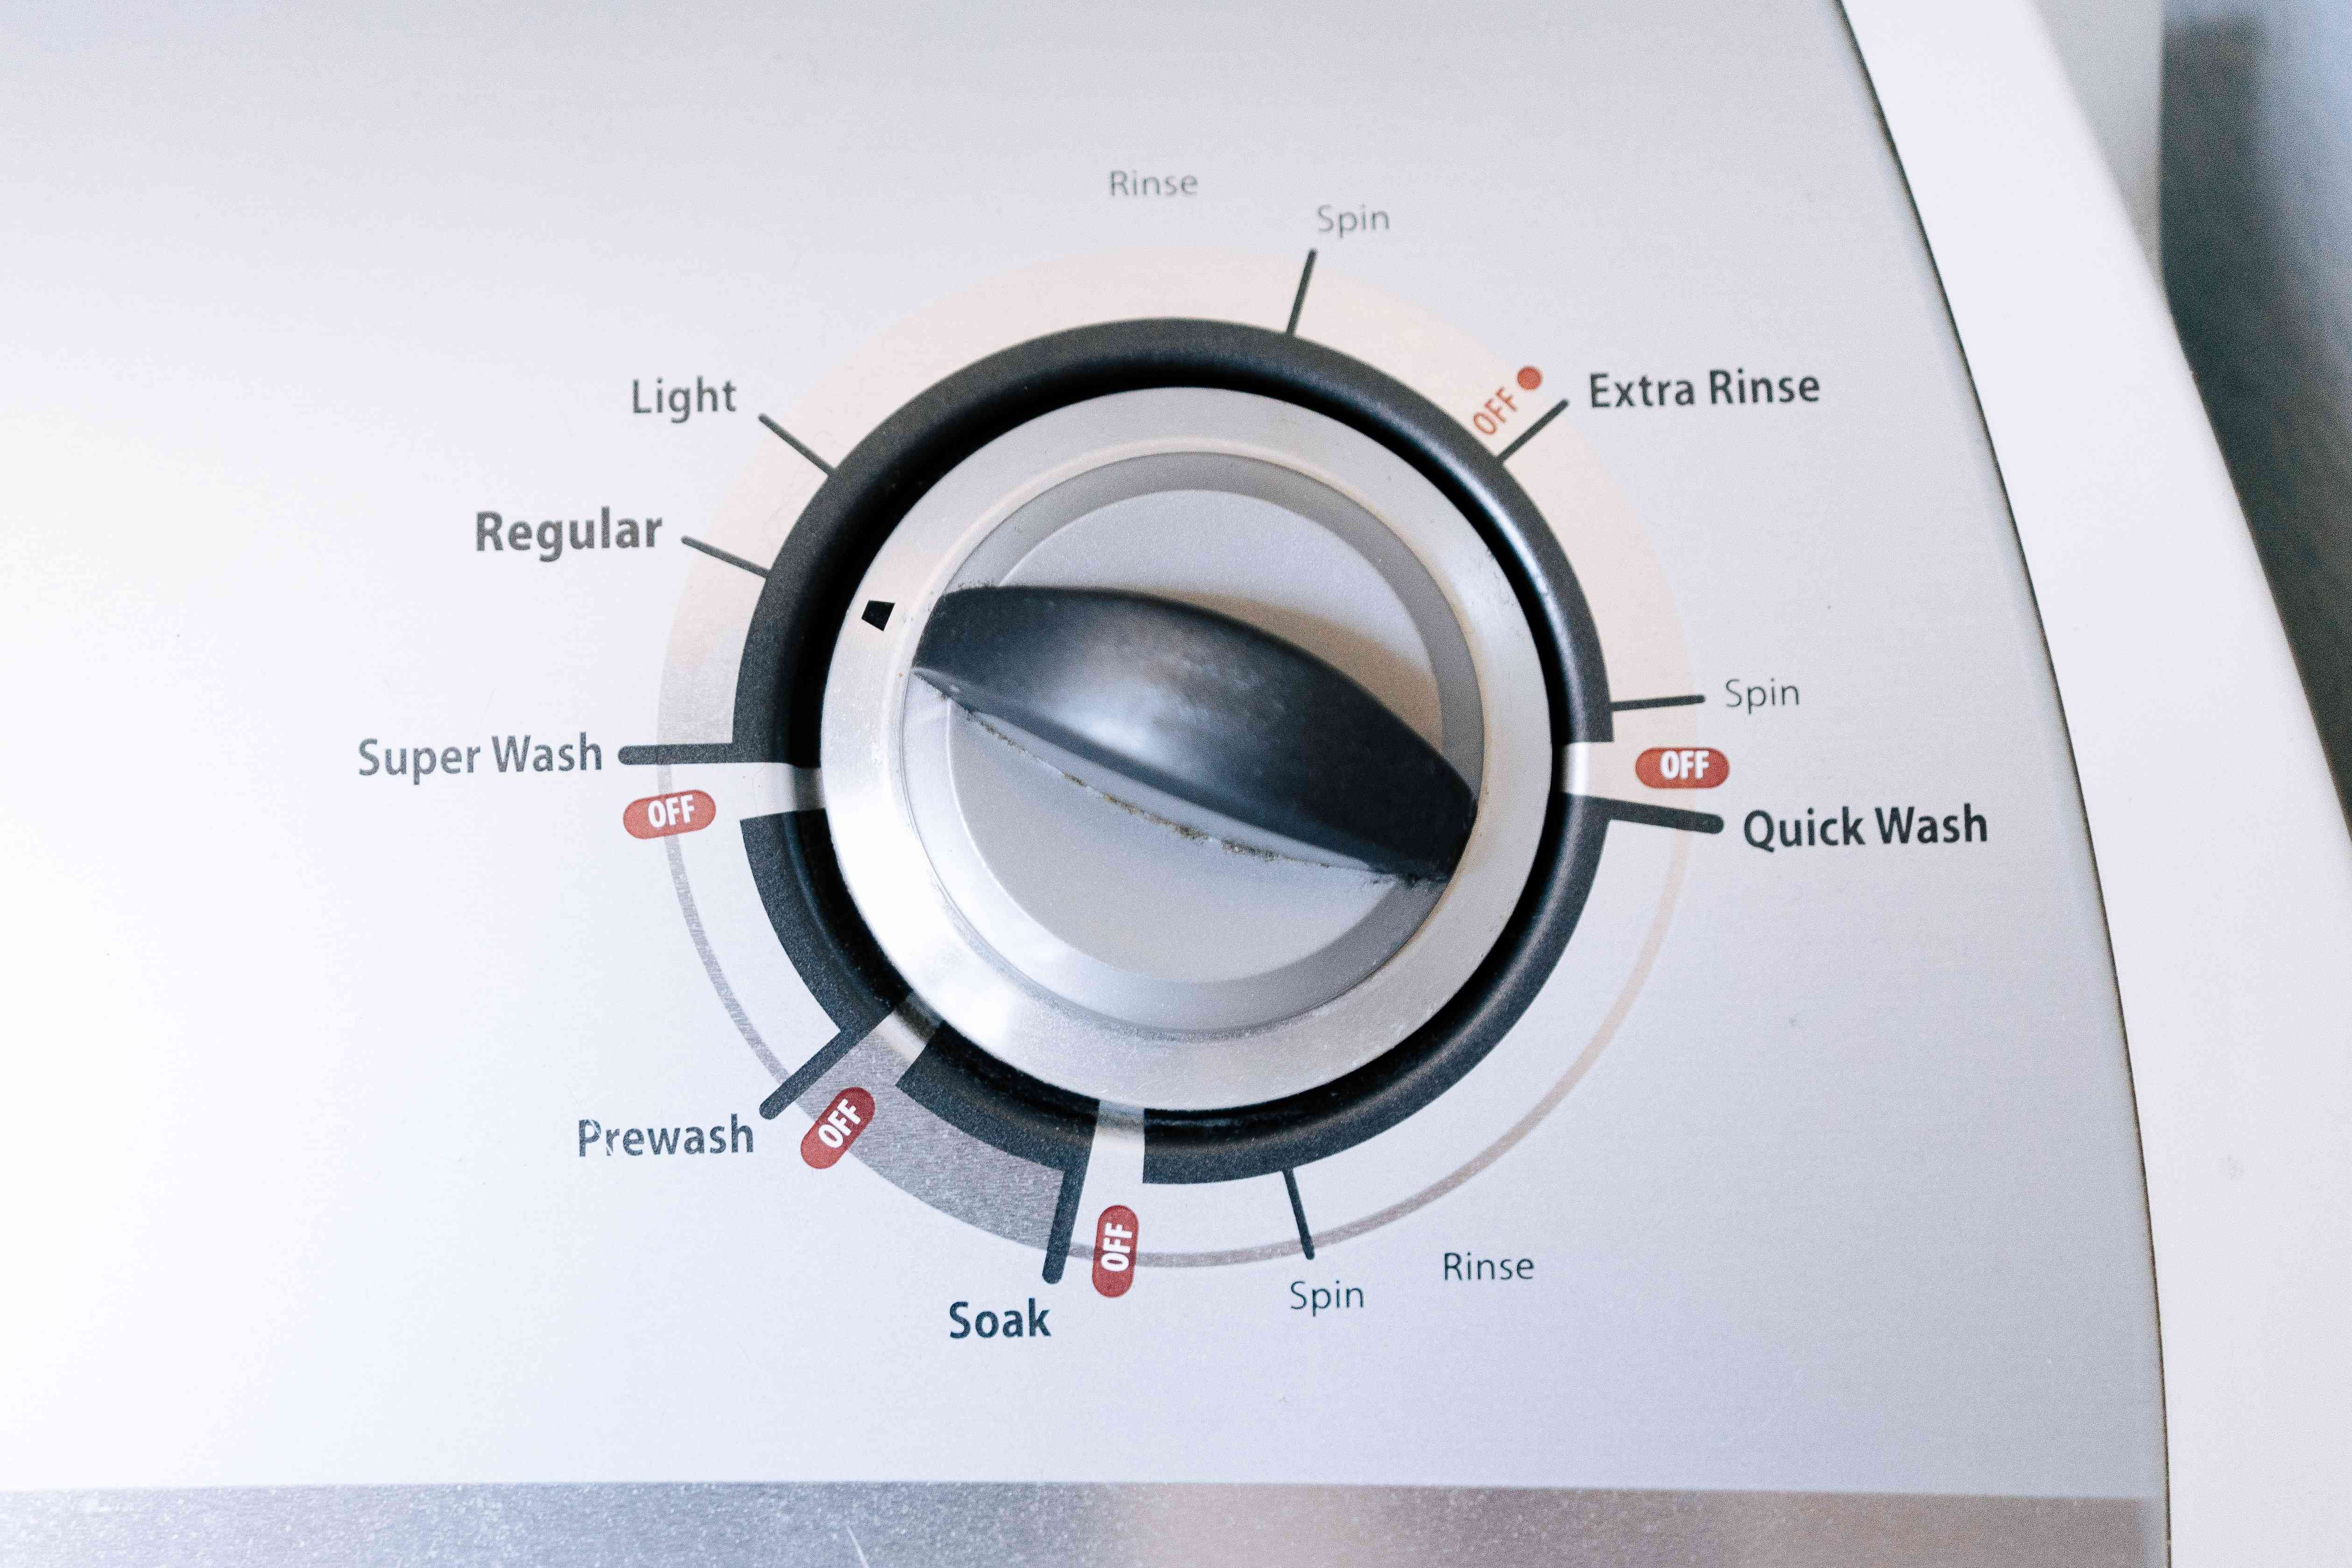 setting the wash cycle